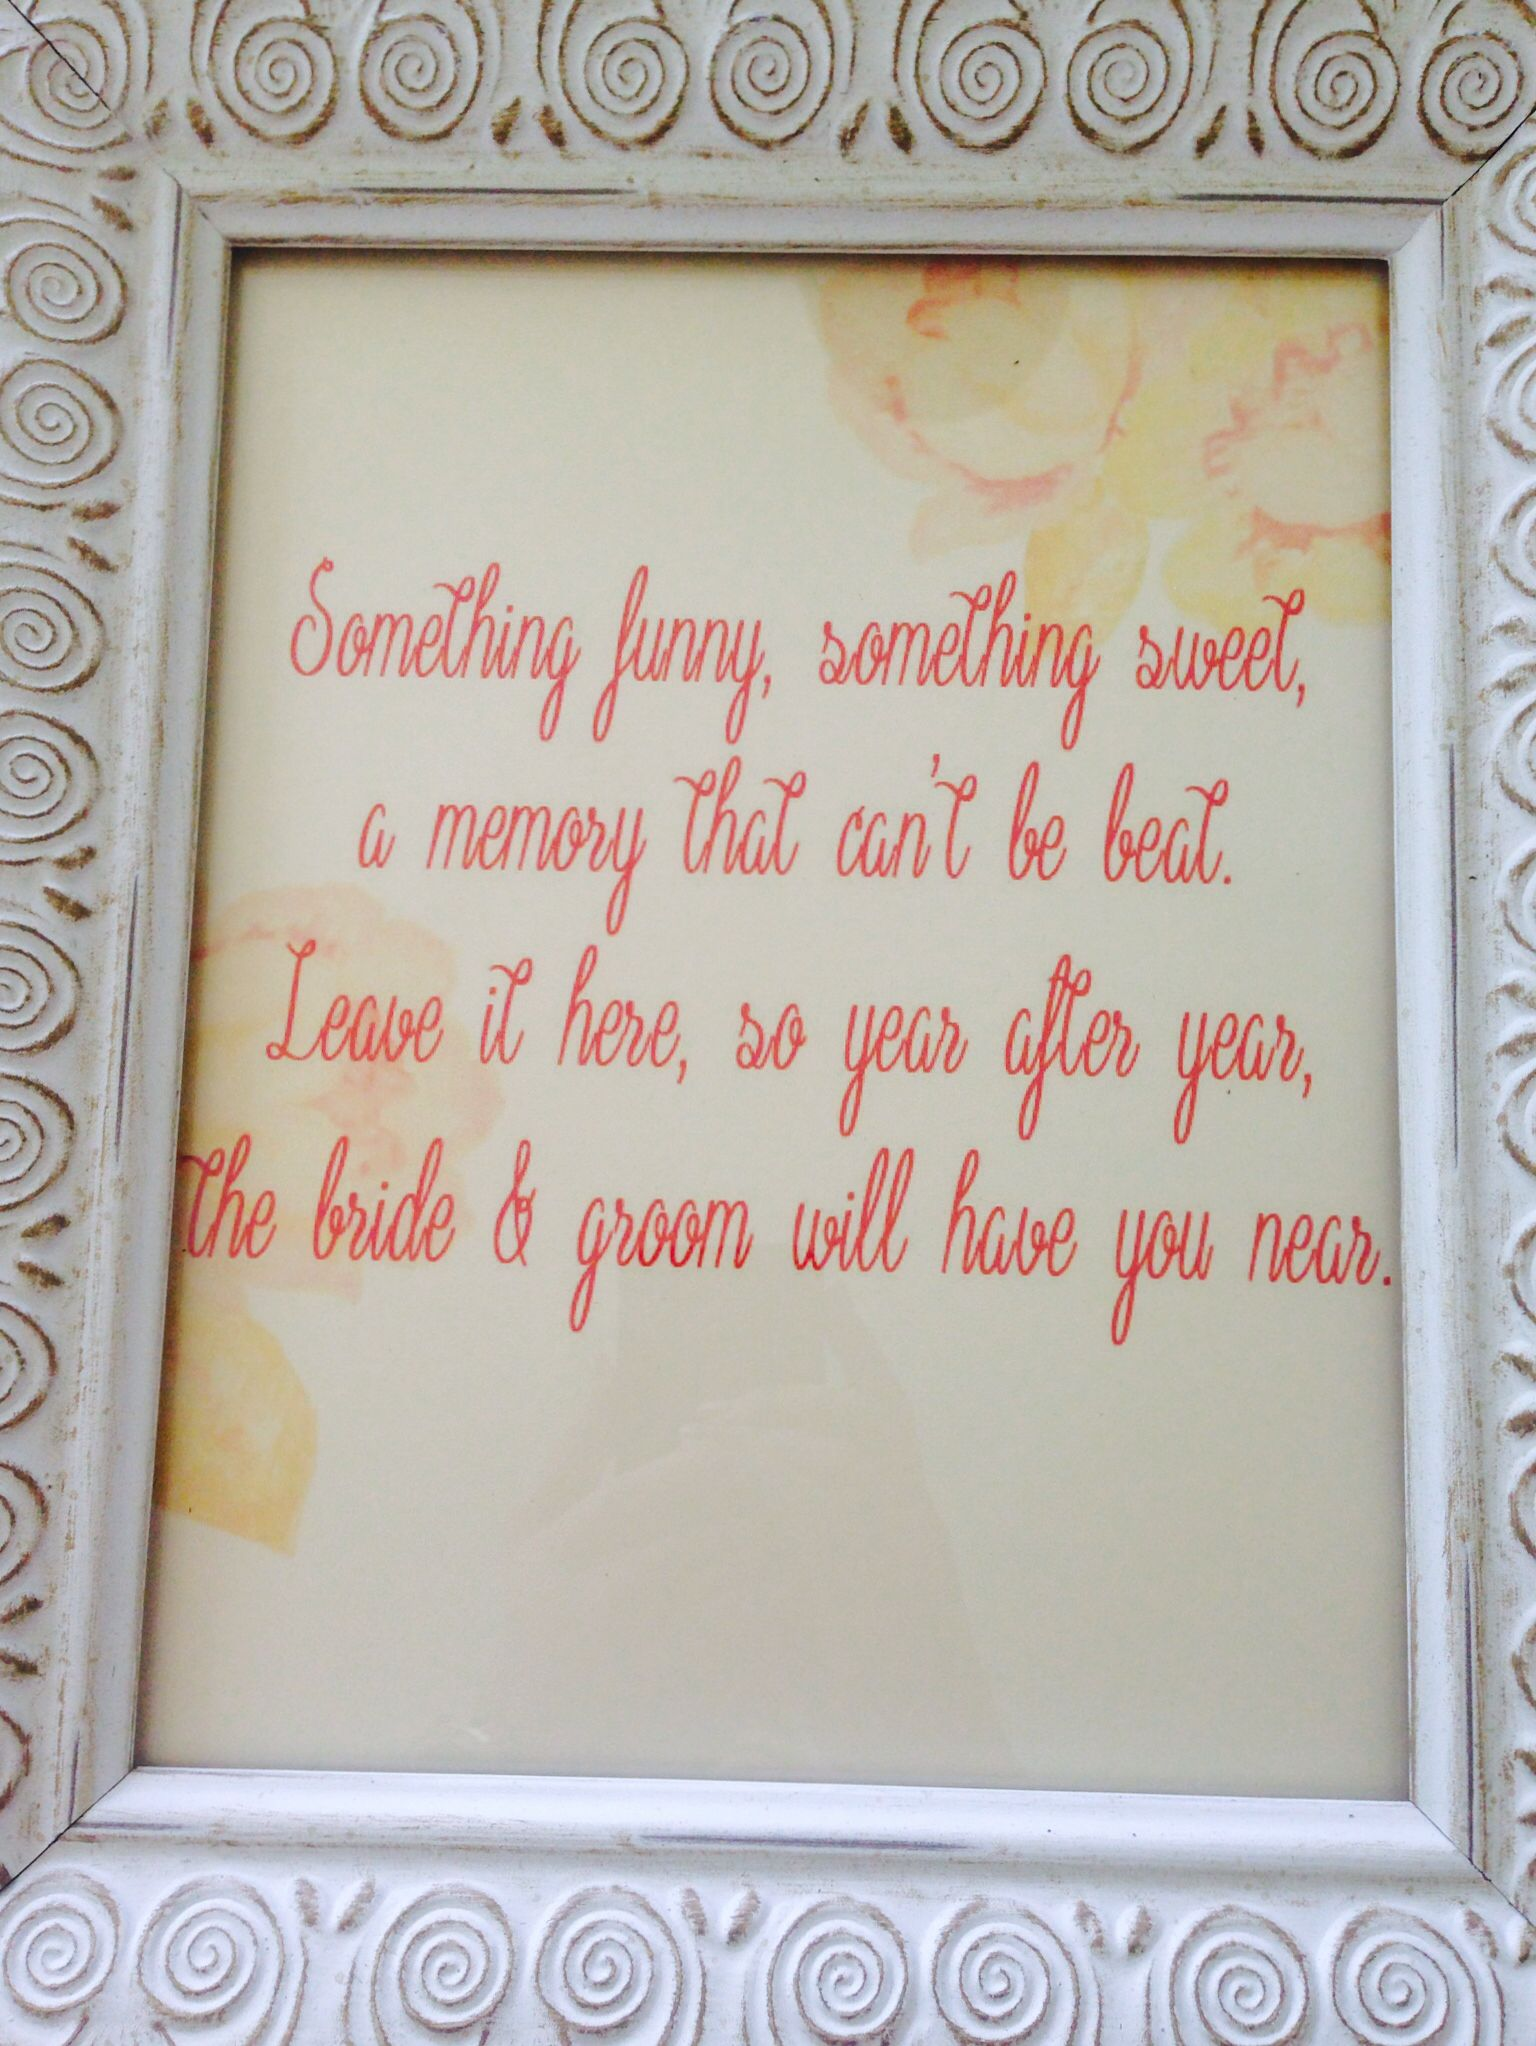 Framed picture on the sign in table with a memory book that guests